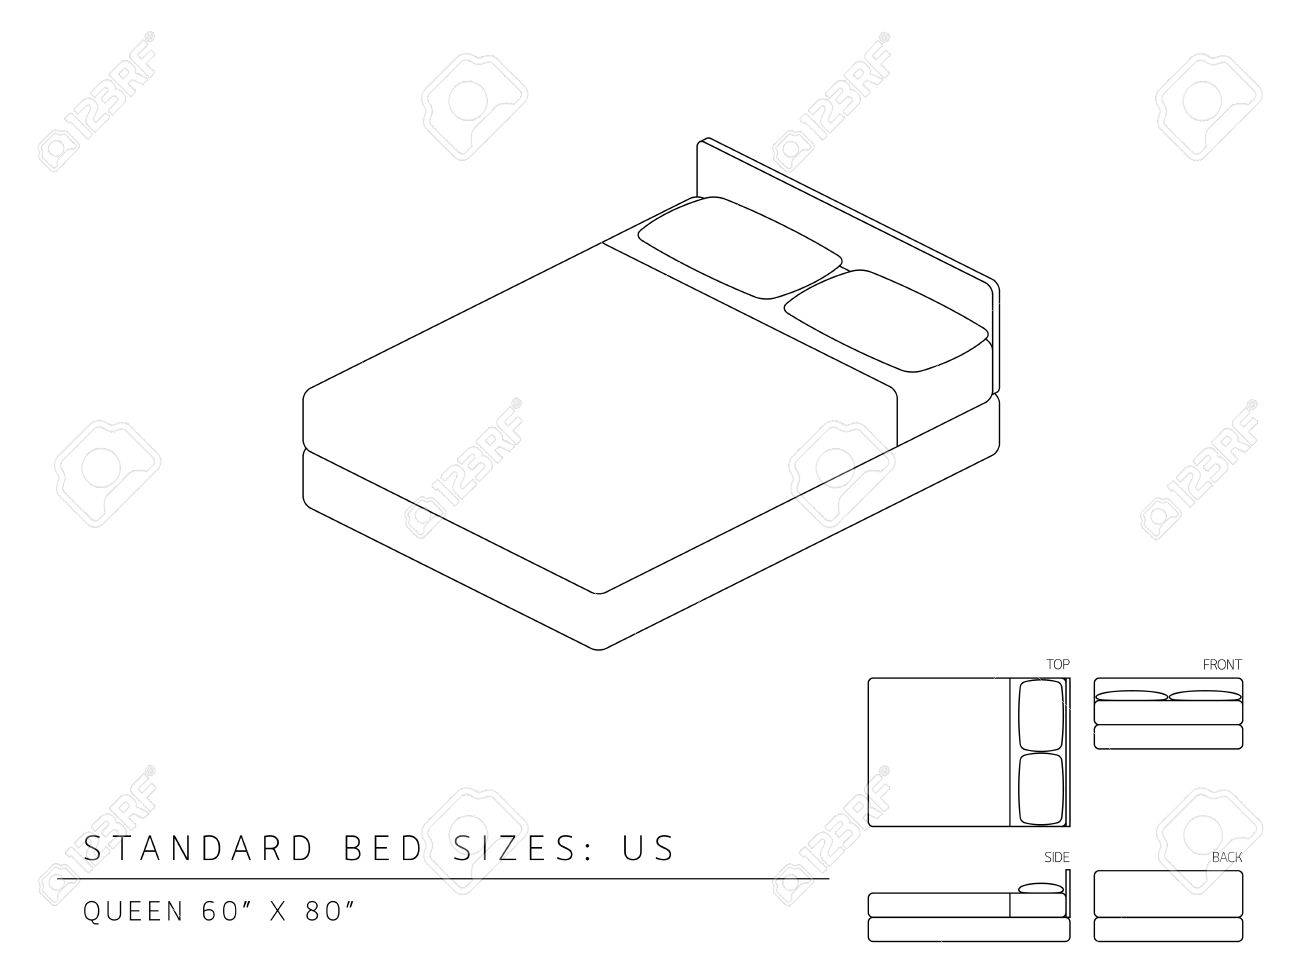 Standard bed sizes of us (United States of America) Queen size 60 x 80